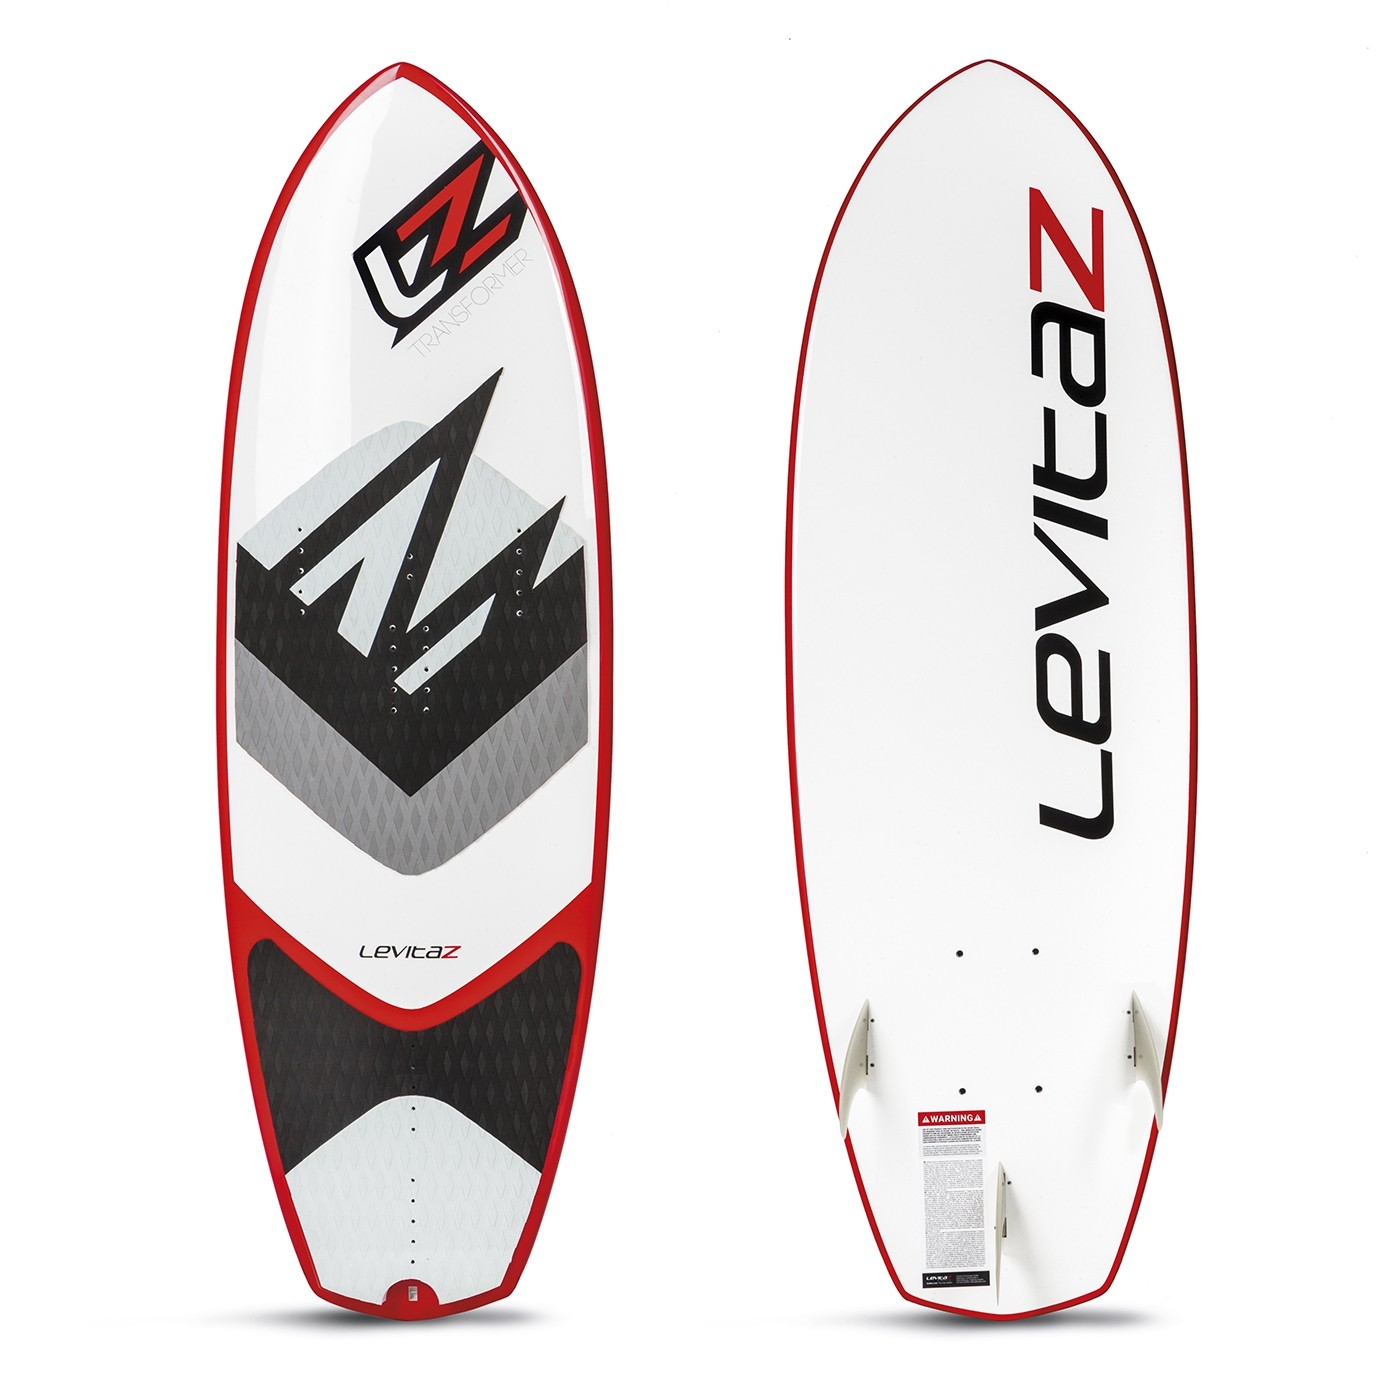 """The Levitaz Transformer is a modern 5´1"""" waveboard combined with a kitefoil interface."""